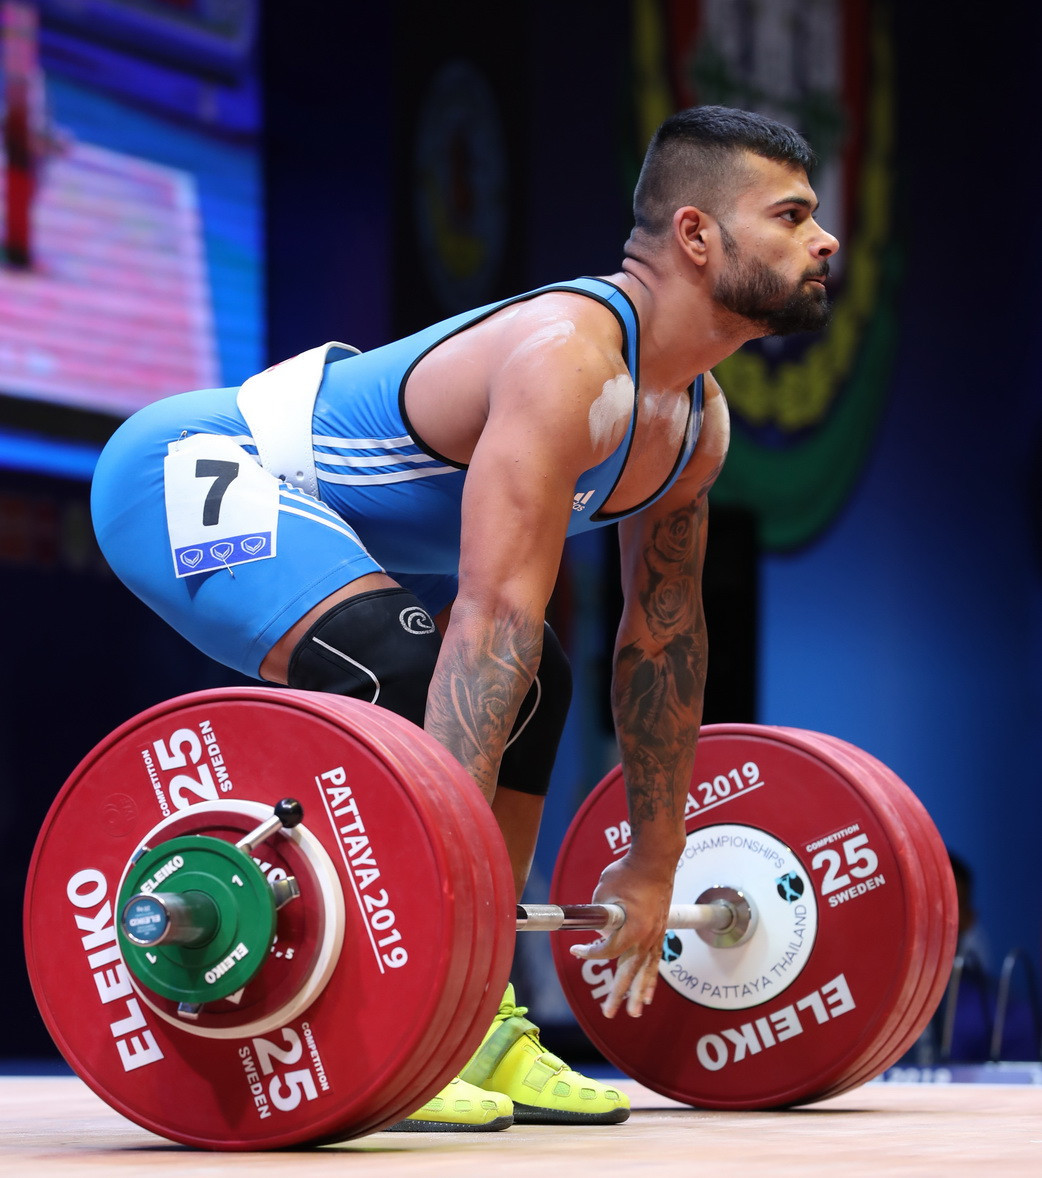 Bulgaria's Bozhidar Dimitrov Andreev rounded off the podium ©IWF